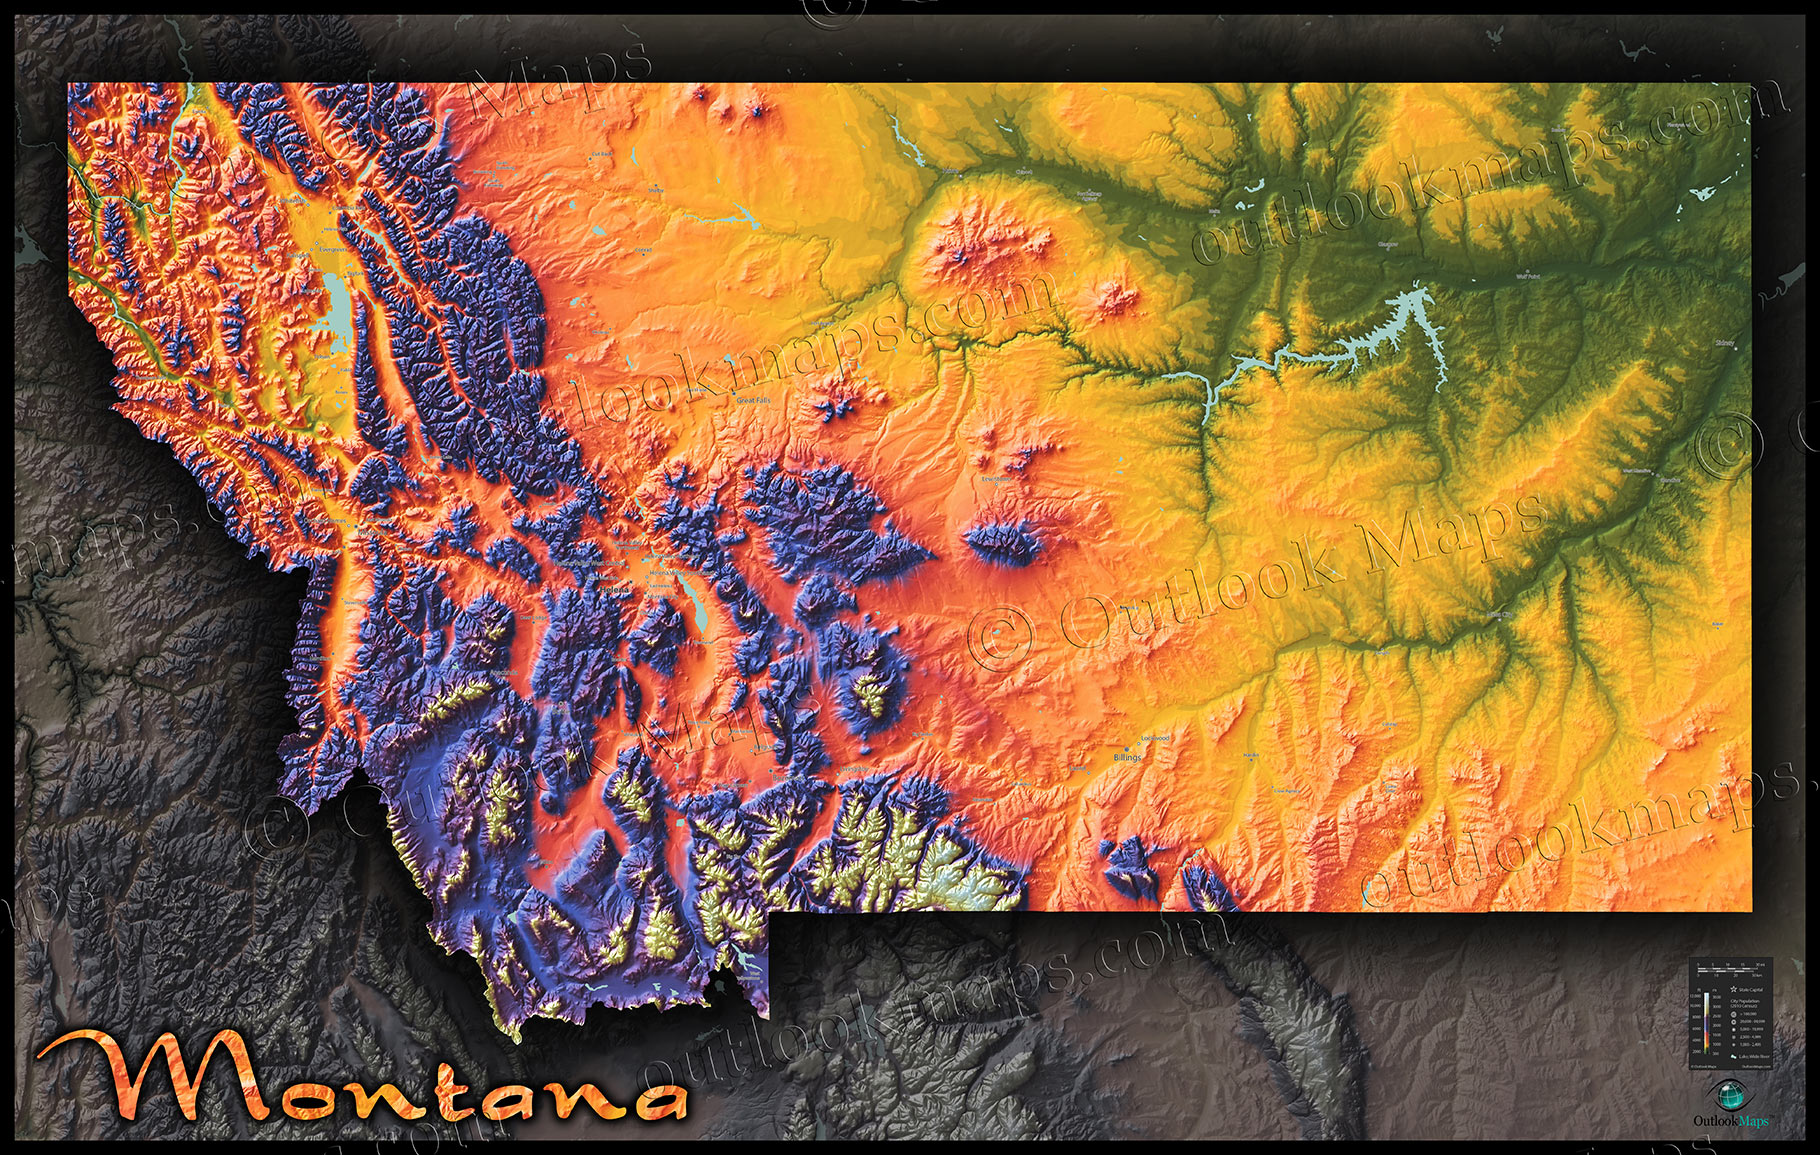 Montana Topography Map | Physical Style with Colorful Mountains